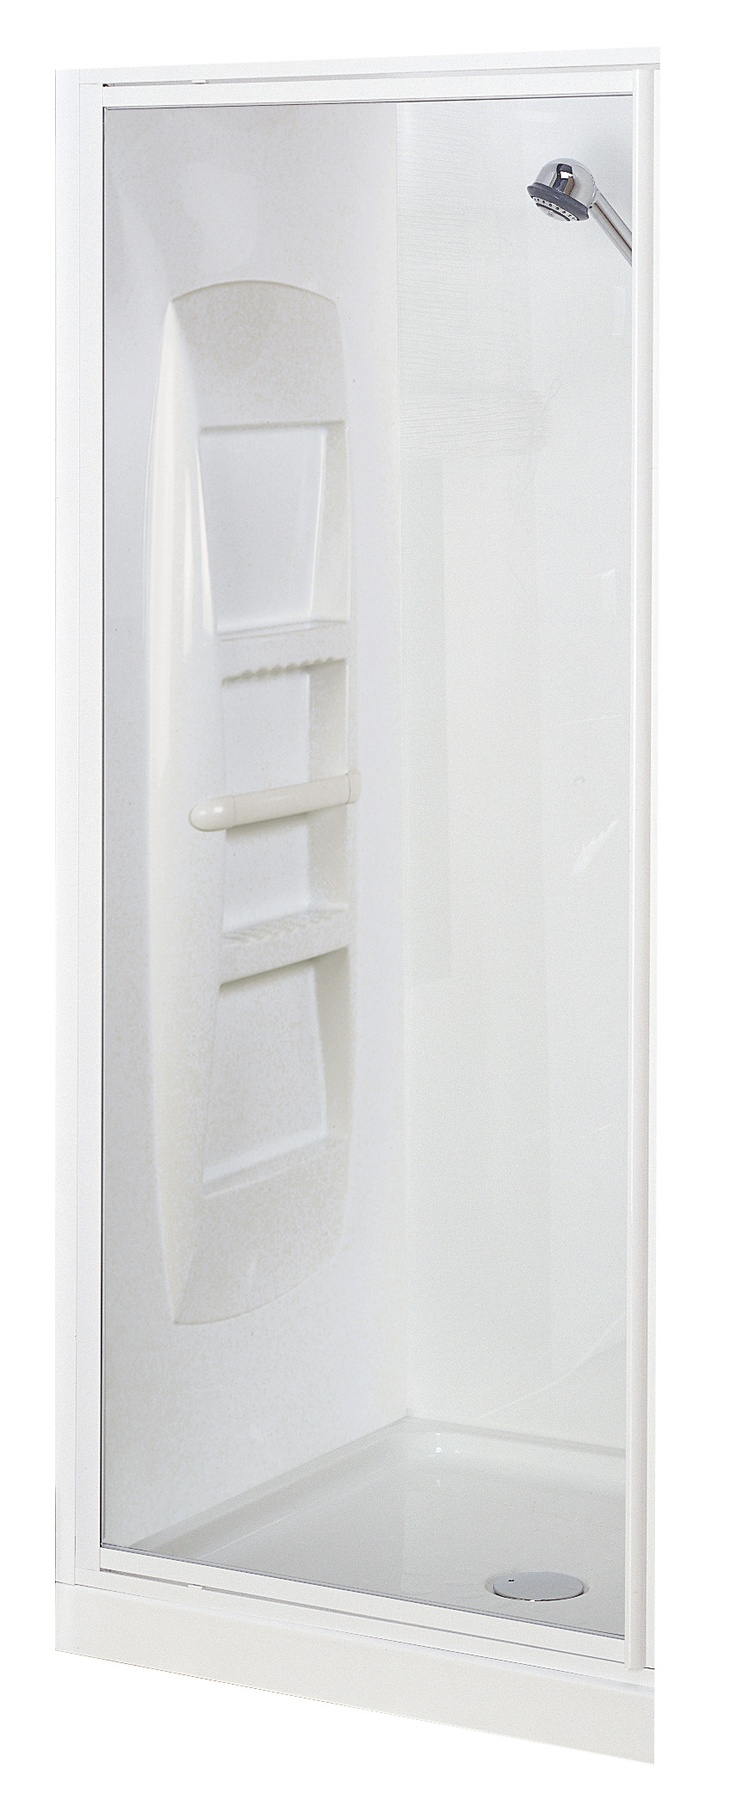 Englefield Sapphire Alcove Shower Enclosure - *The Sapphire Shower range ensures long-lasting performance with fully framed construction  *Fully reversible door in 4mm clear toughened safety glass  *Full-length magnetic door strip and seals for additional water tightness  *Quick-Fit® tray with a 40mm upstand provides greater water tightness  *Available in White frame  *Choose from 3 wall options: Side-contour, Corner-contour or Flat  **Available at Pecks Plumbing Plus Manukau!